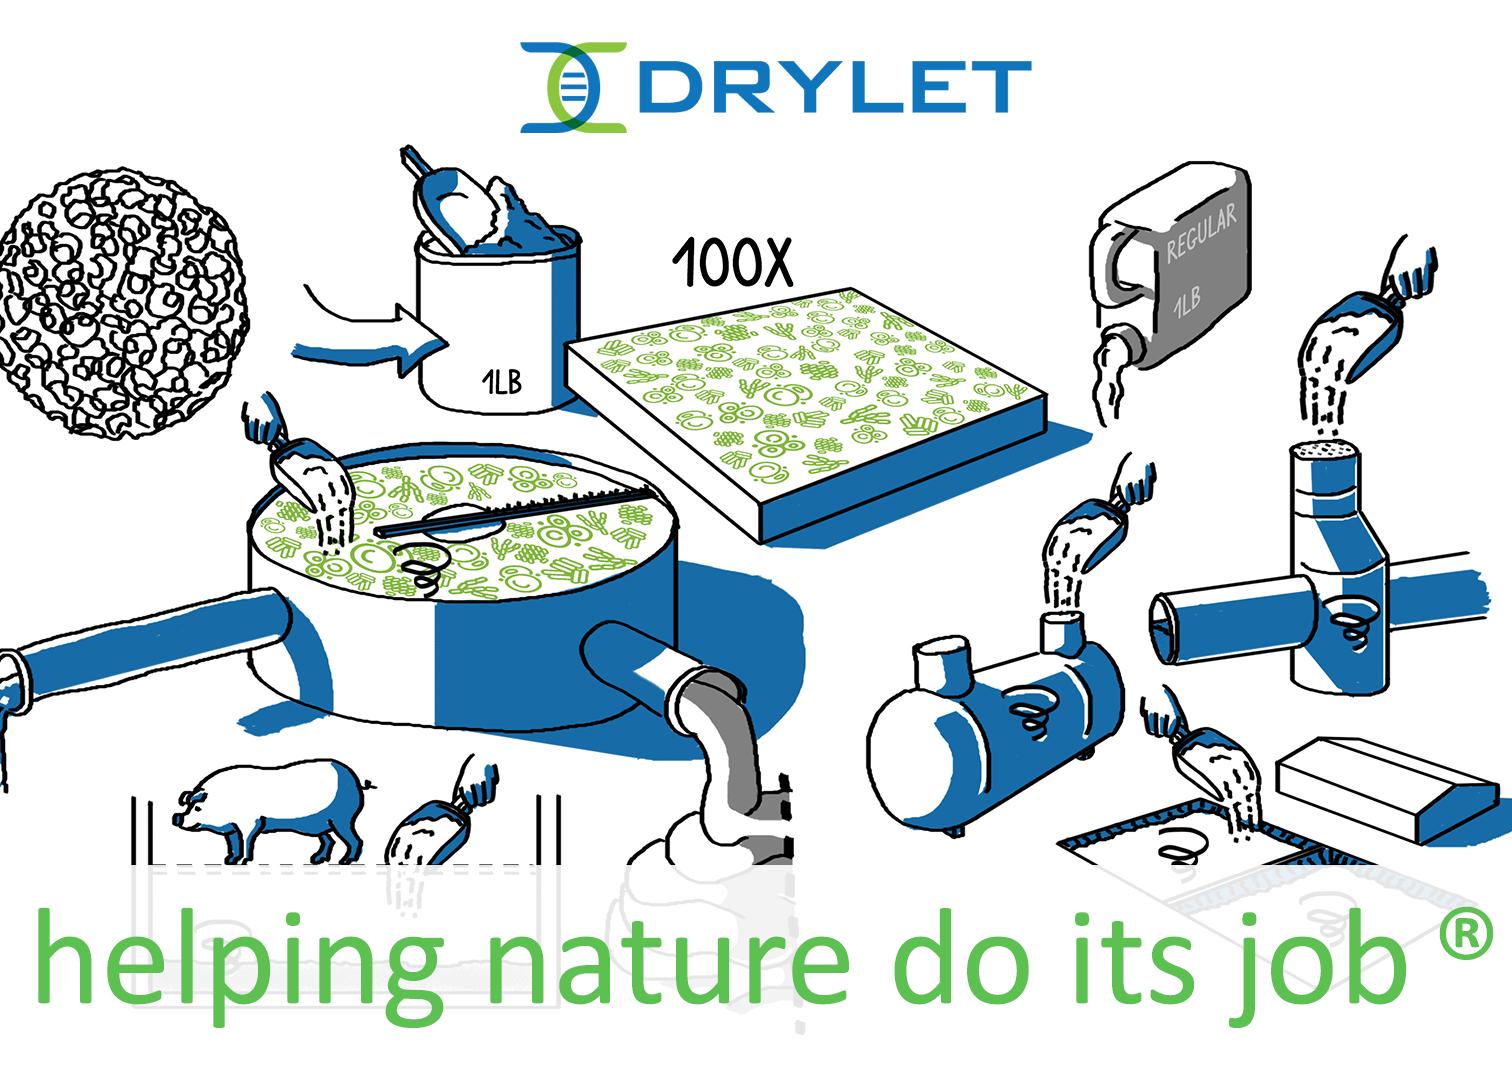 Drylet: helping nature do its job